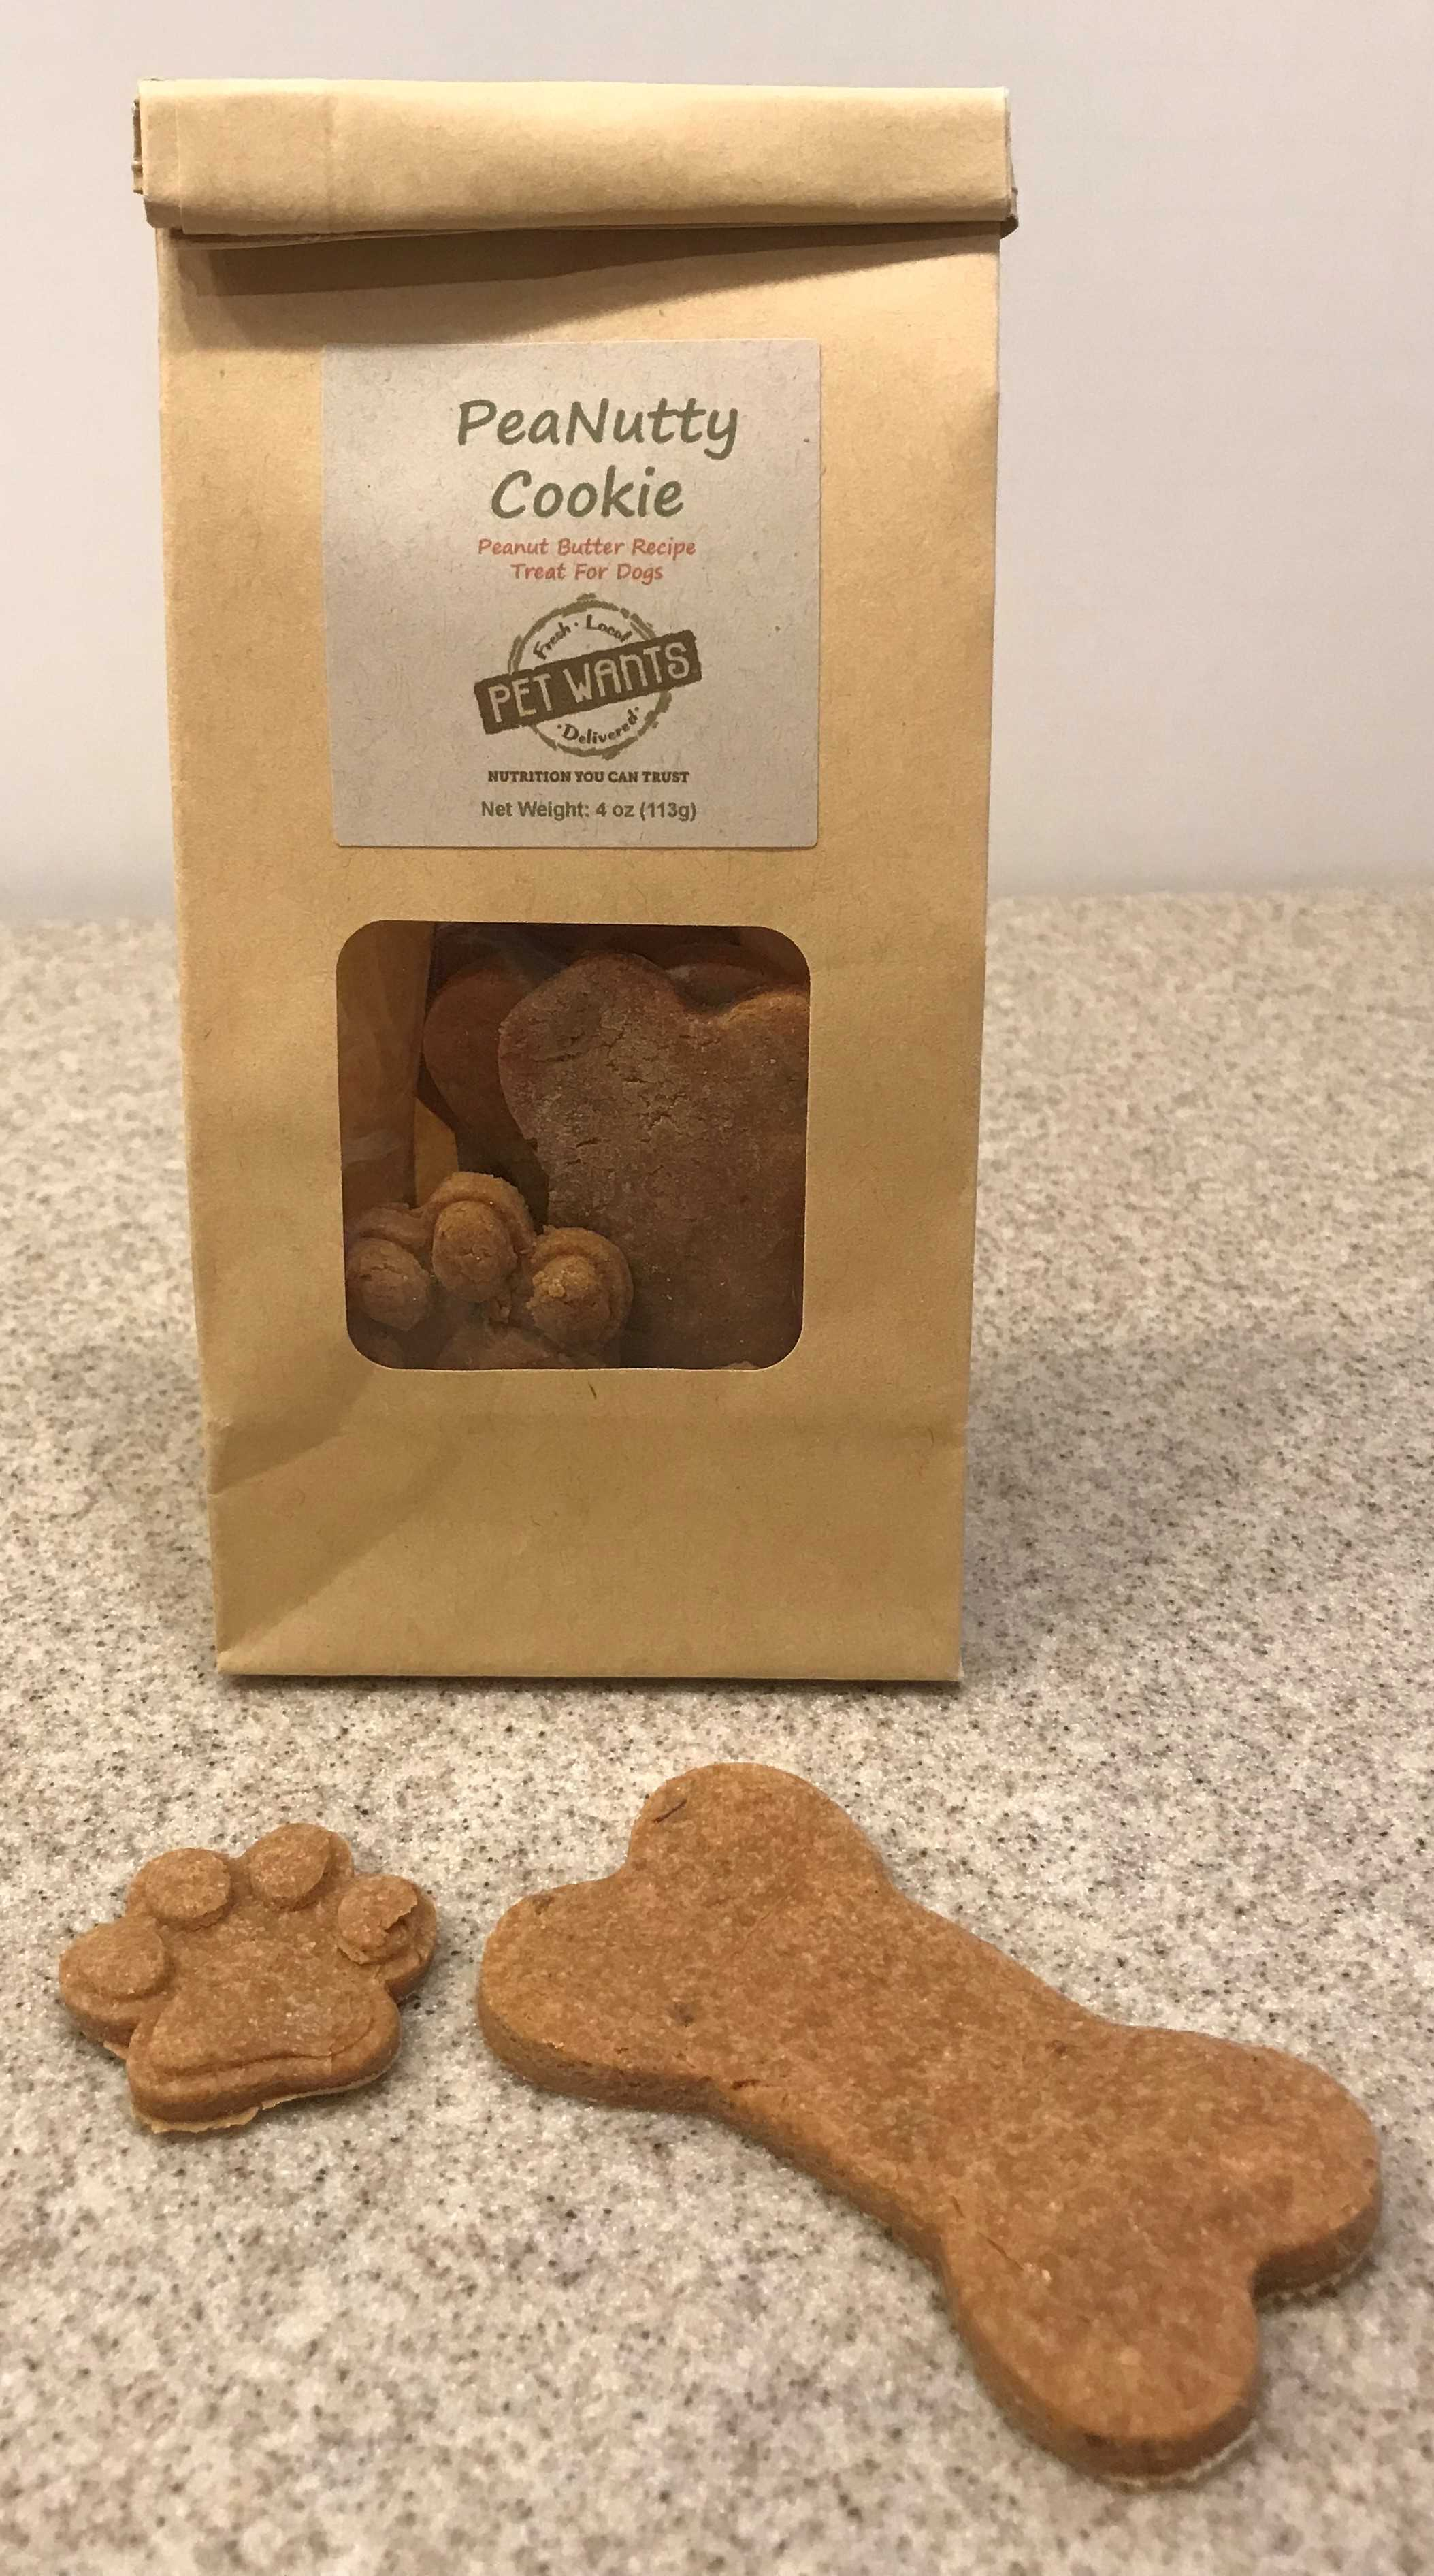 PeaNutty Cookies - 4 oz